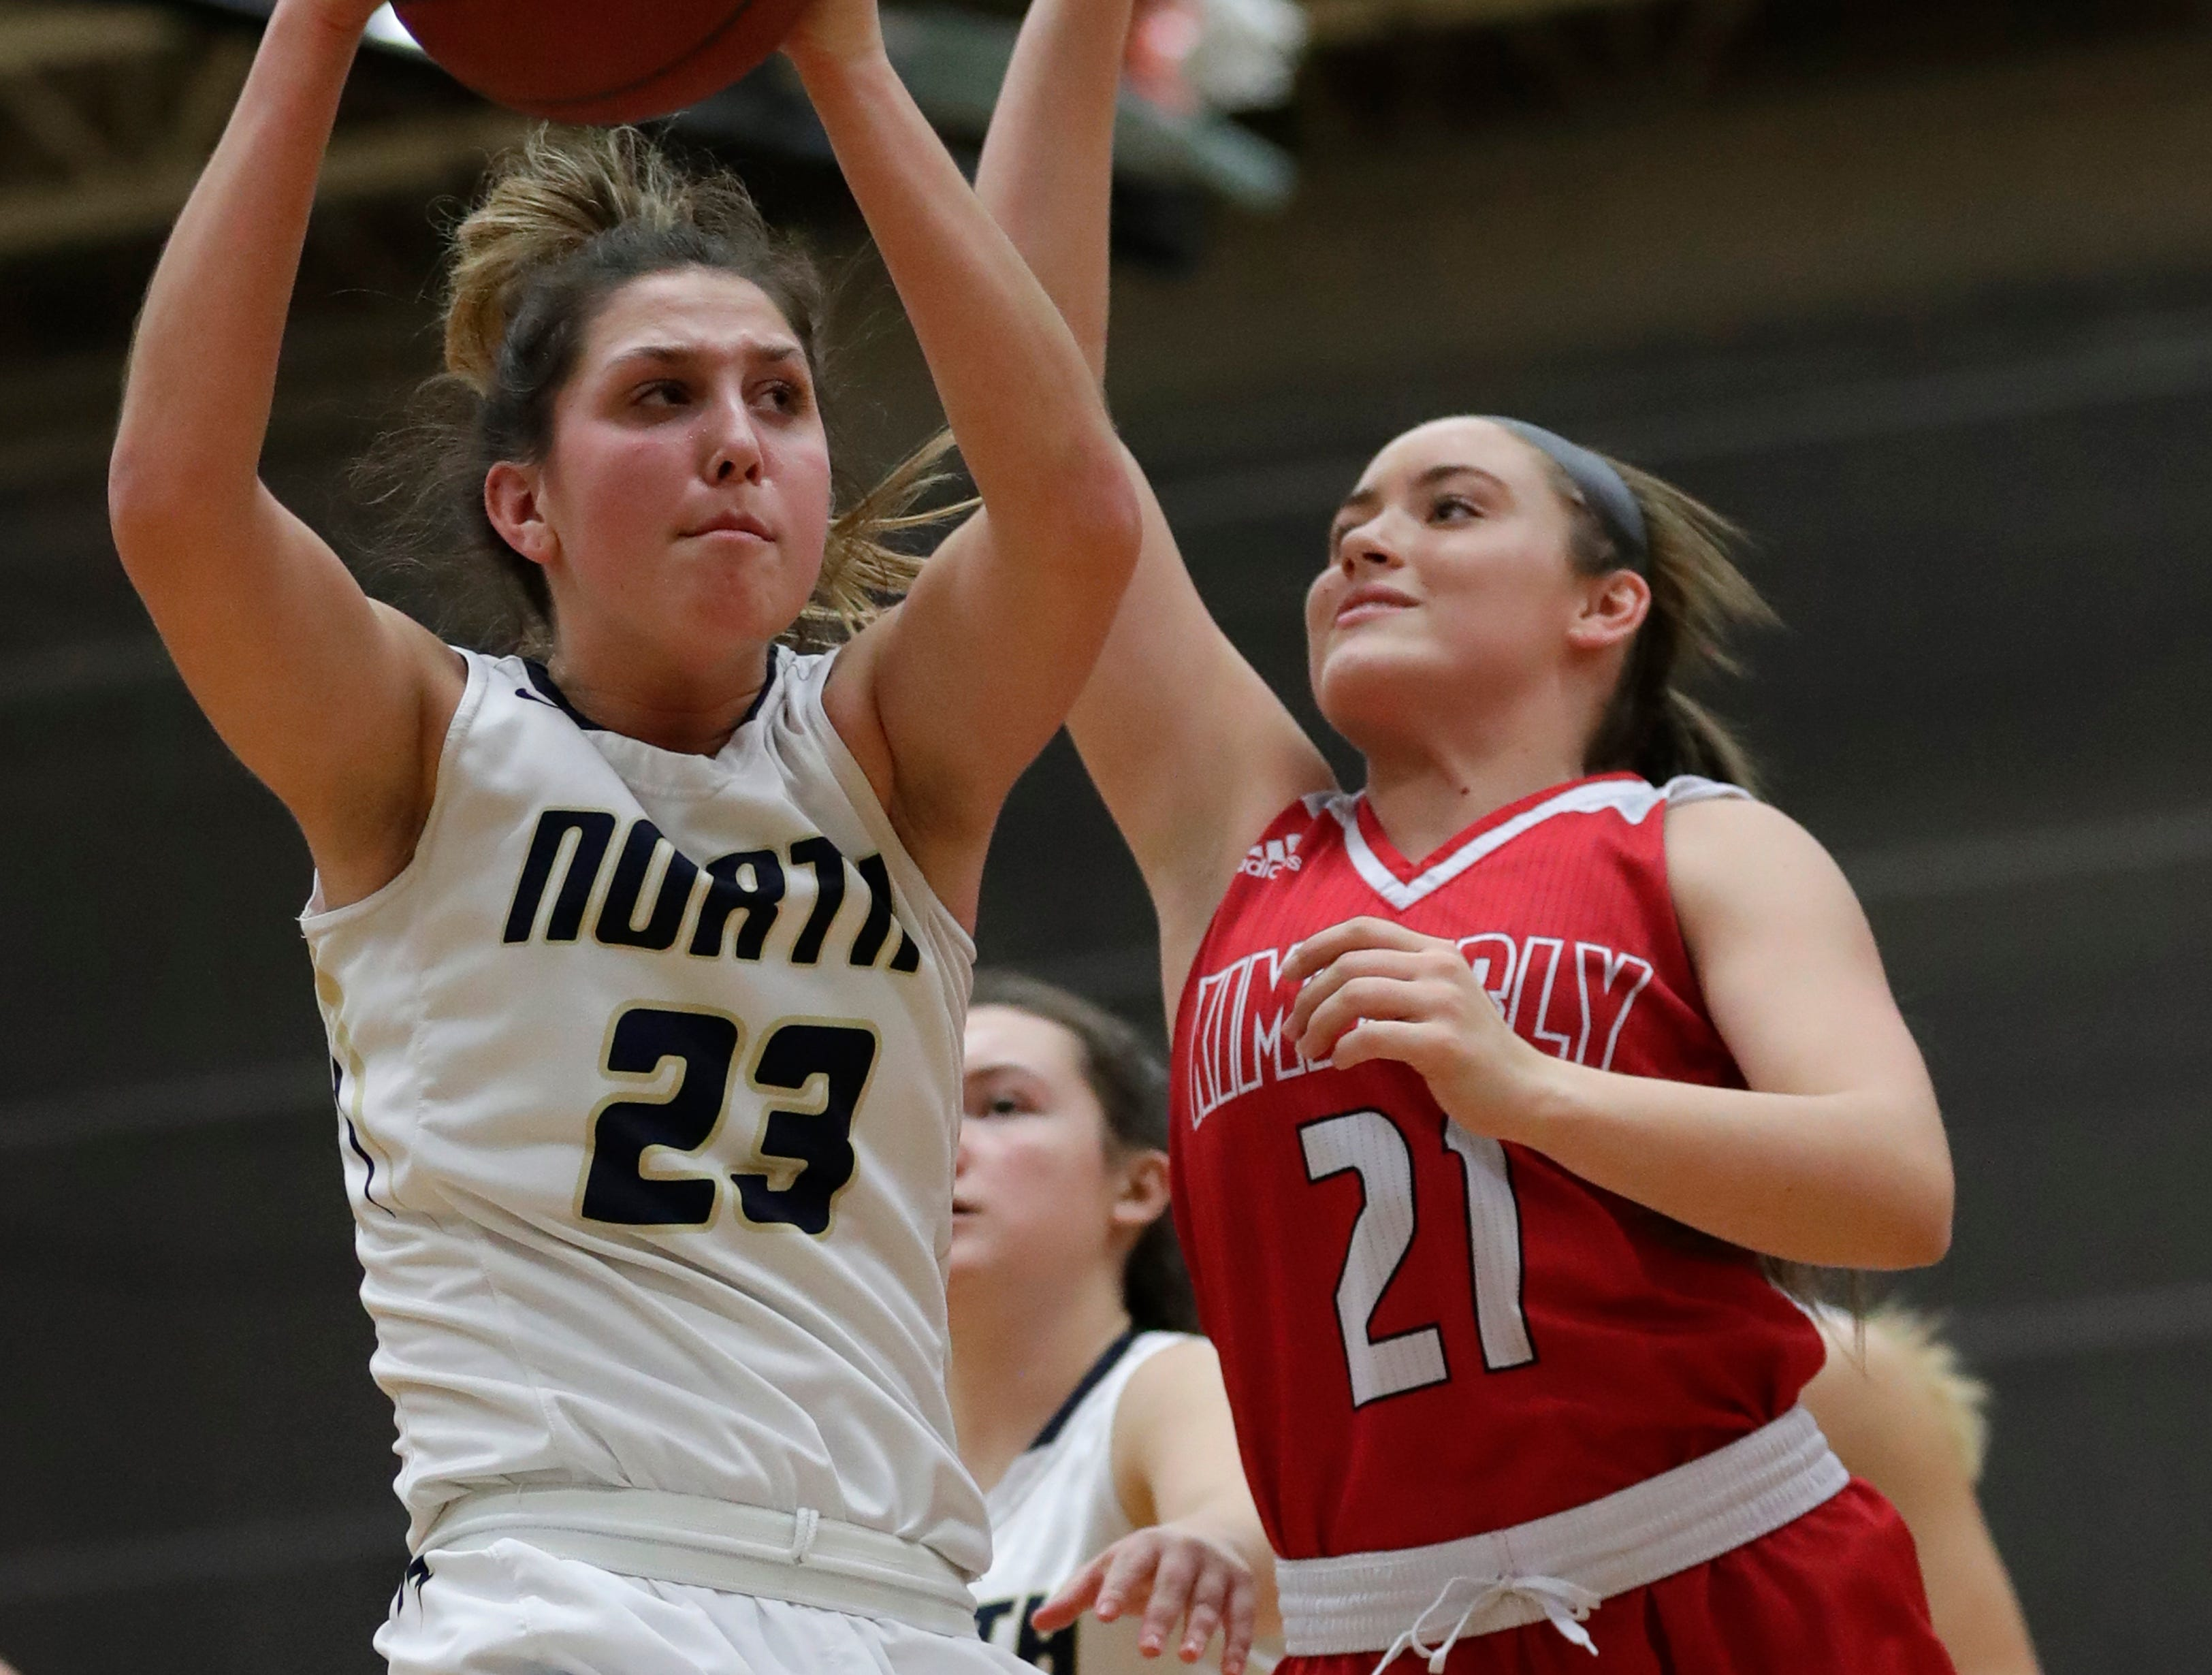 Appleton North High School's Paige Schabo (23) pulls down a rebound against Kimberly High School's Kate Karch (21) during their girls basketball game Tuesday, January 8, 2019, in Appleton, Wis. Dan Powers/USA TODAY NETWORK-Wisconsin